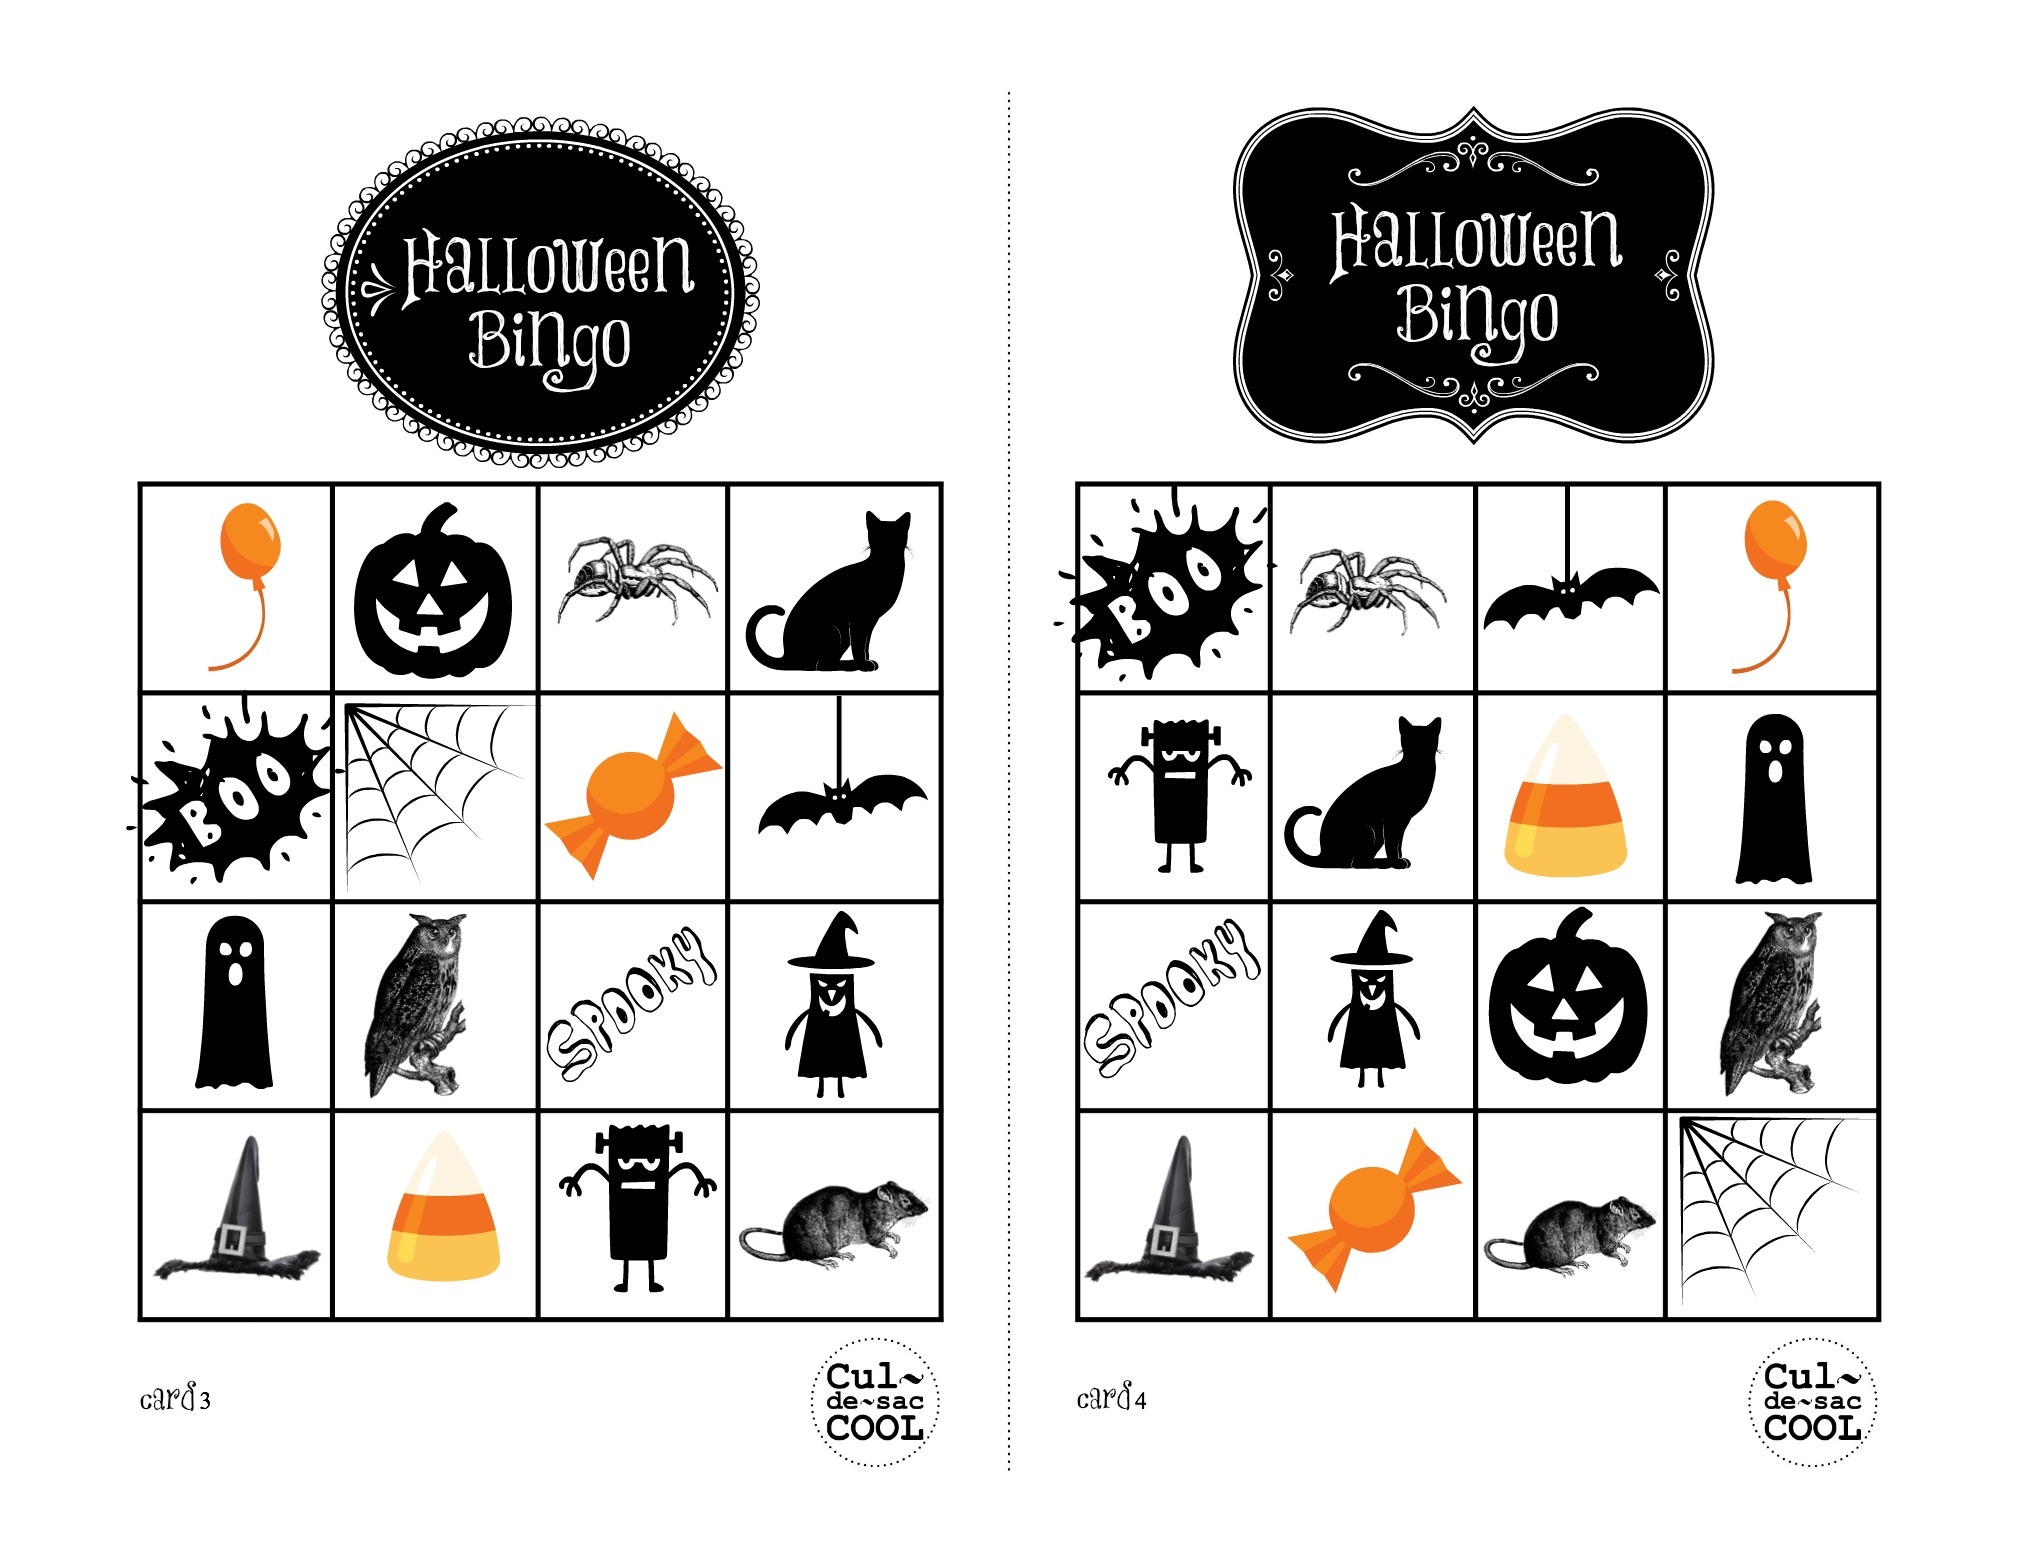 It's just an image of Printable Halloween Games for school